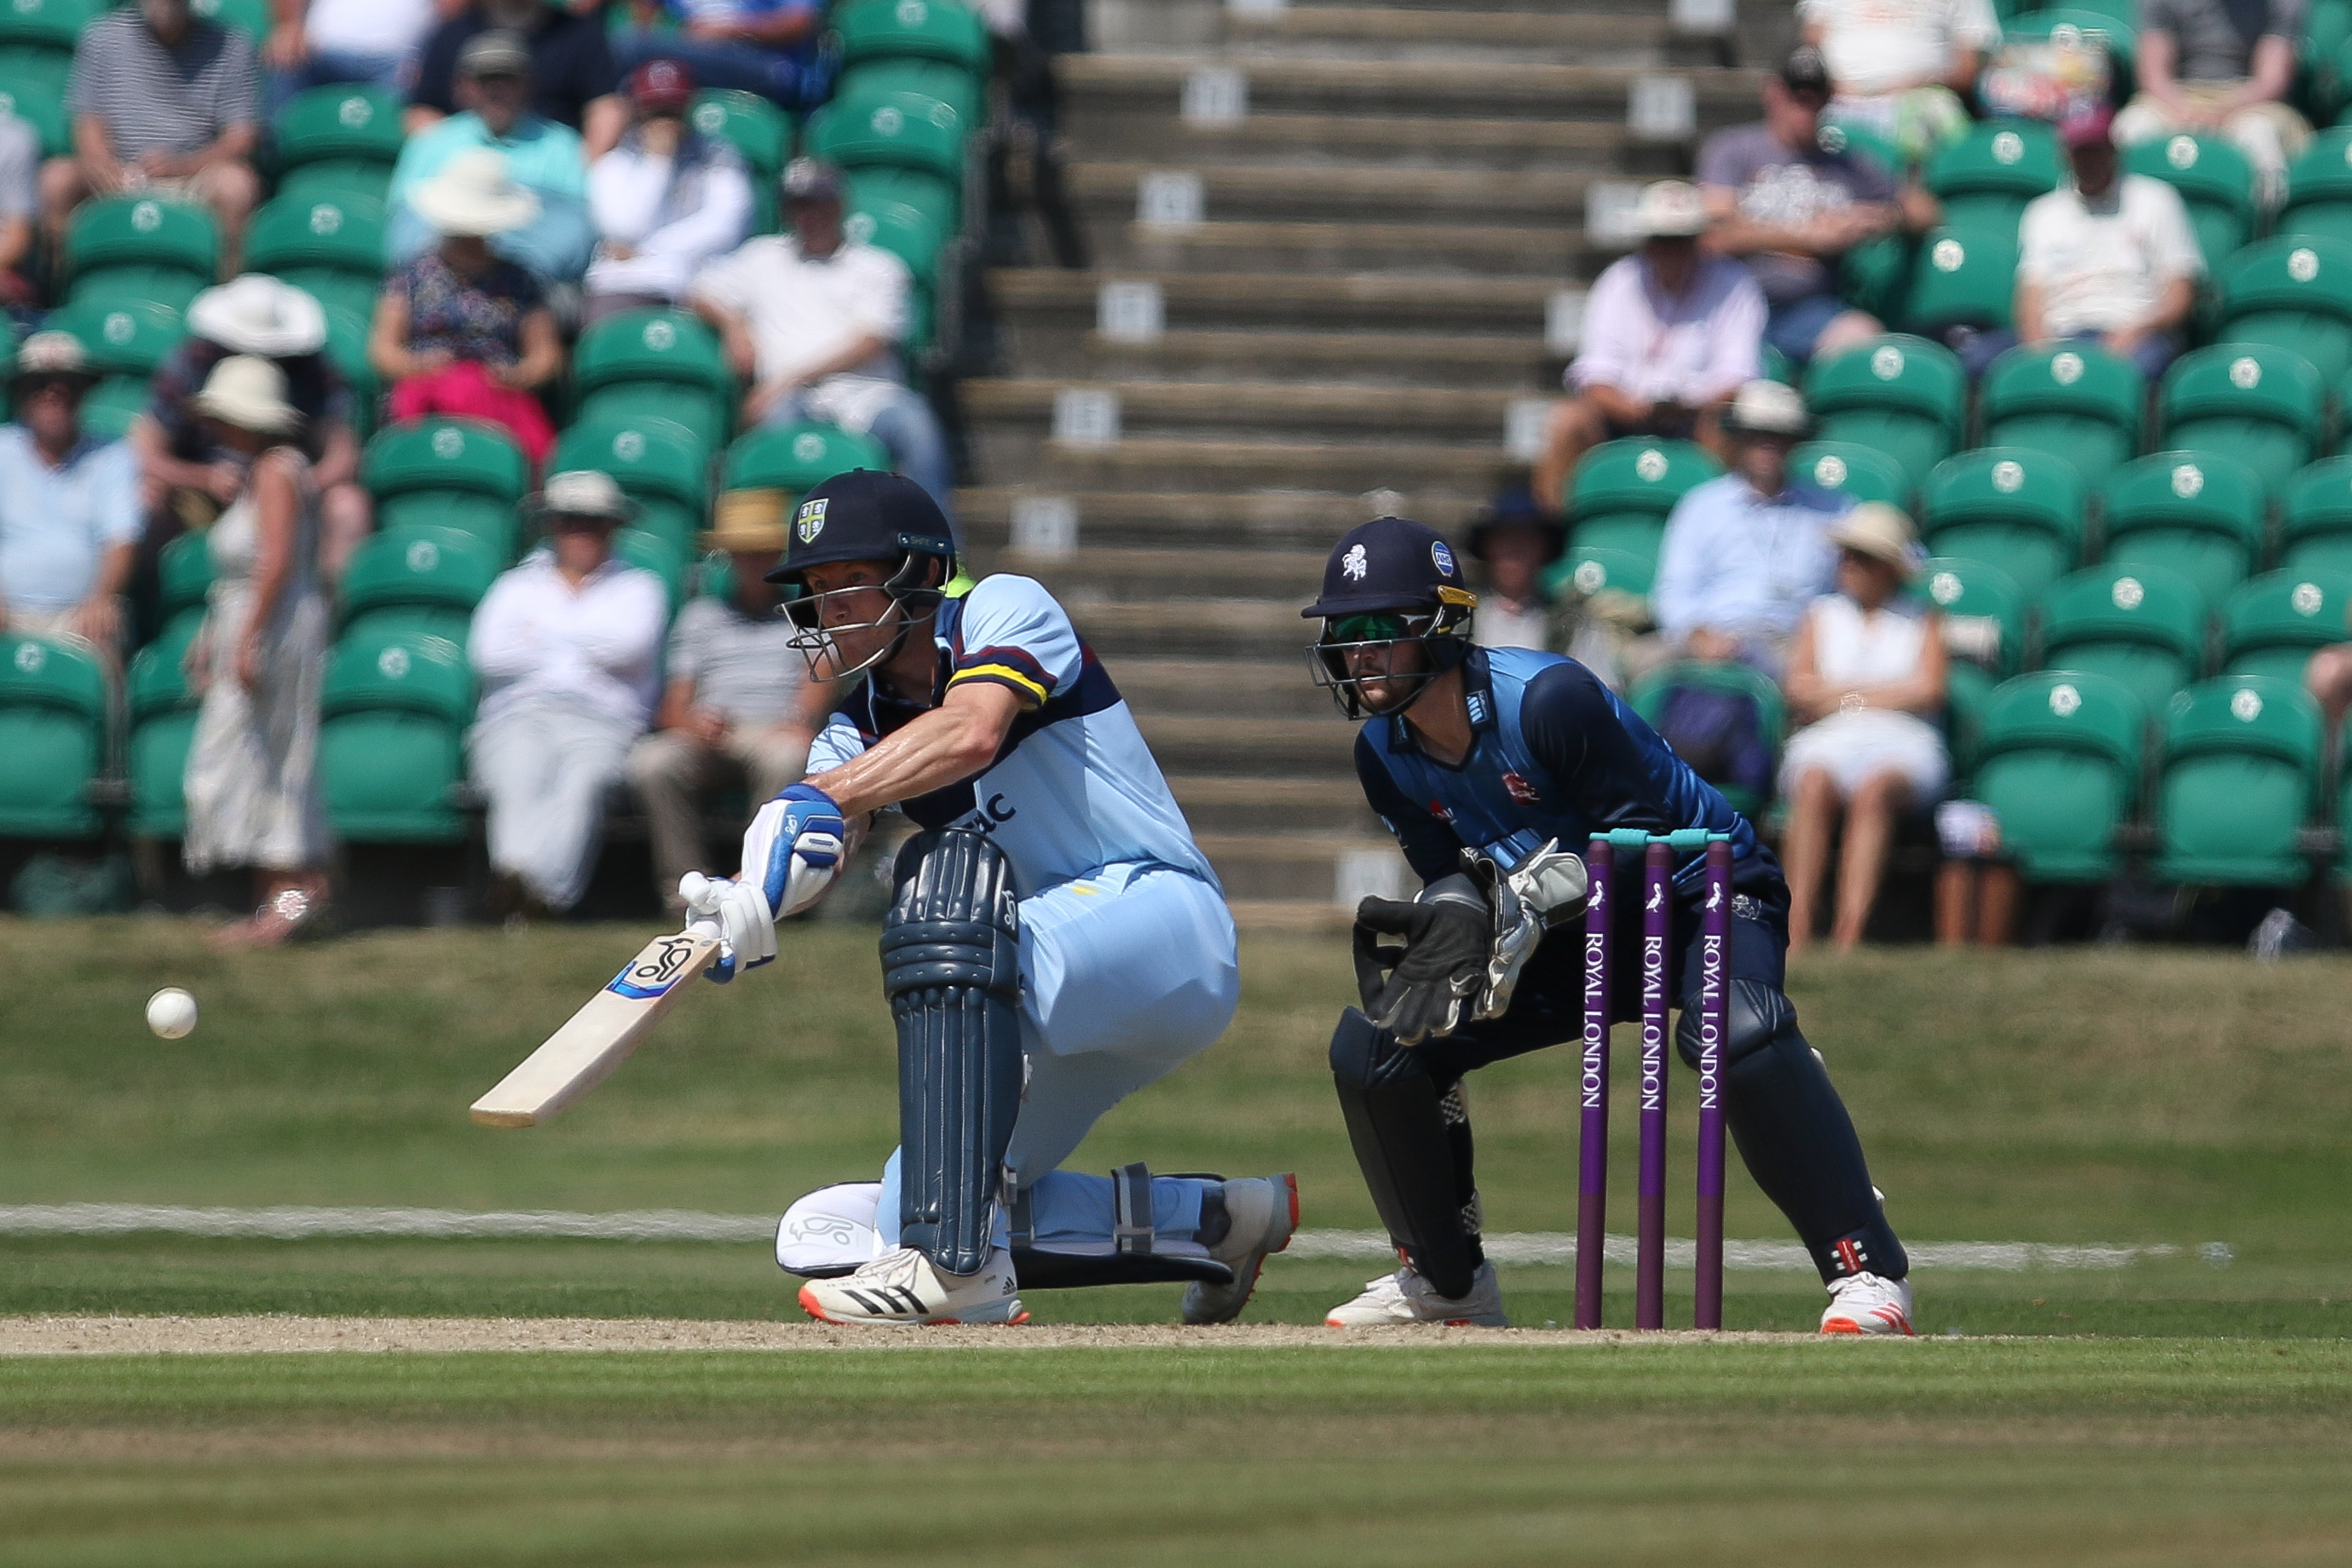 <p>Cameron Bancroft of Durham bats as Ollie Robinson of Kent looks on during the Royal London One Day Cup match between Kent and Durham at the County Ground, Beckenham, UK on 22nd July 2021. (Photo by Will Matthews/MI News/NurPhoto via Getty Images)</p>